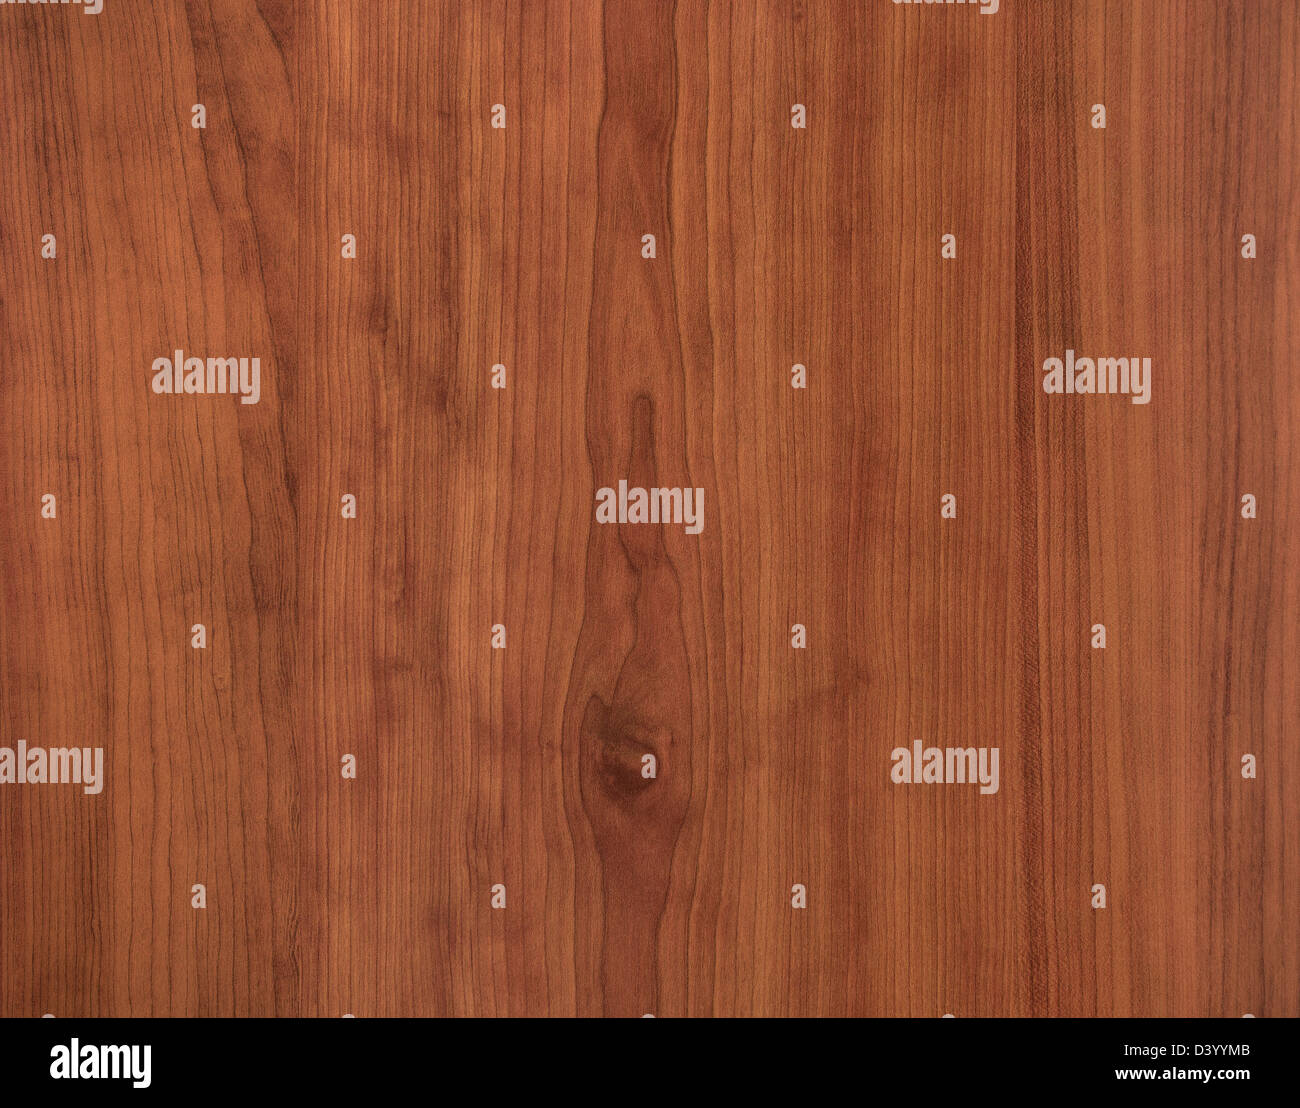 Brown wood grain table texture. Wooden background. - Stock Image